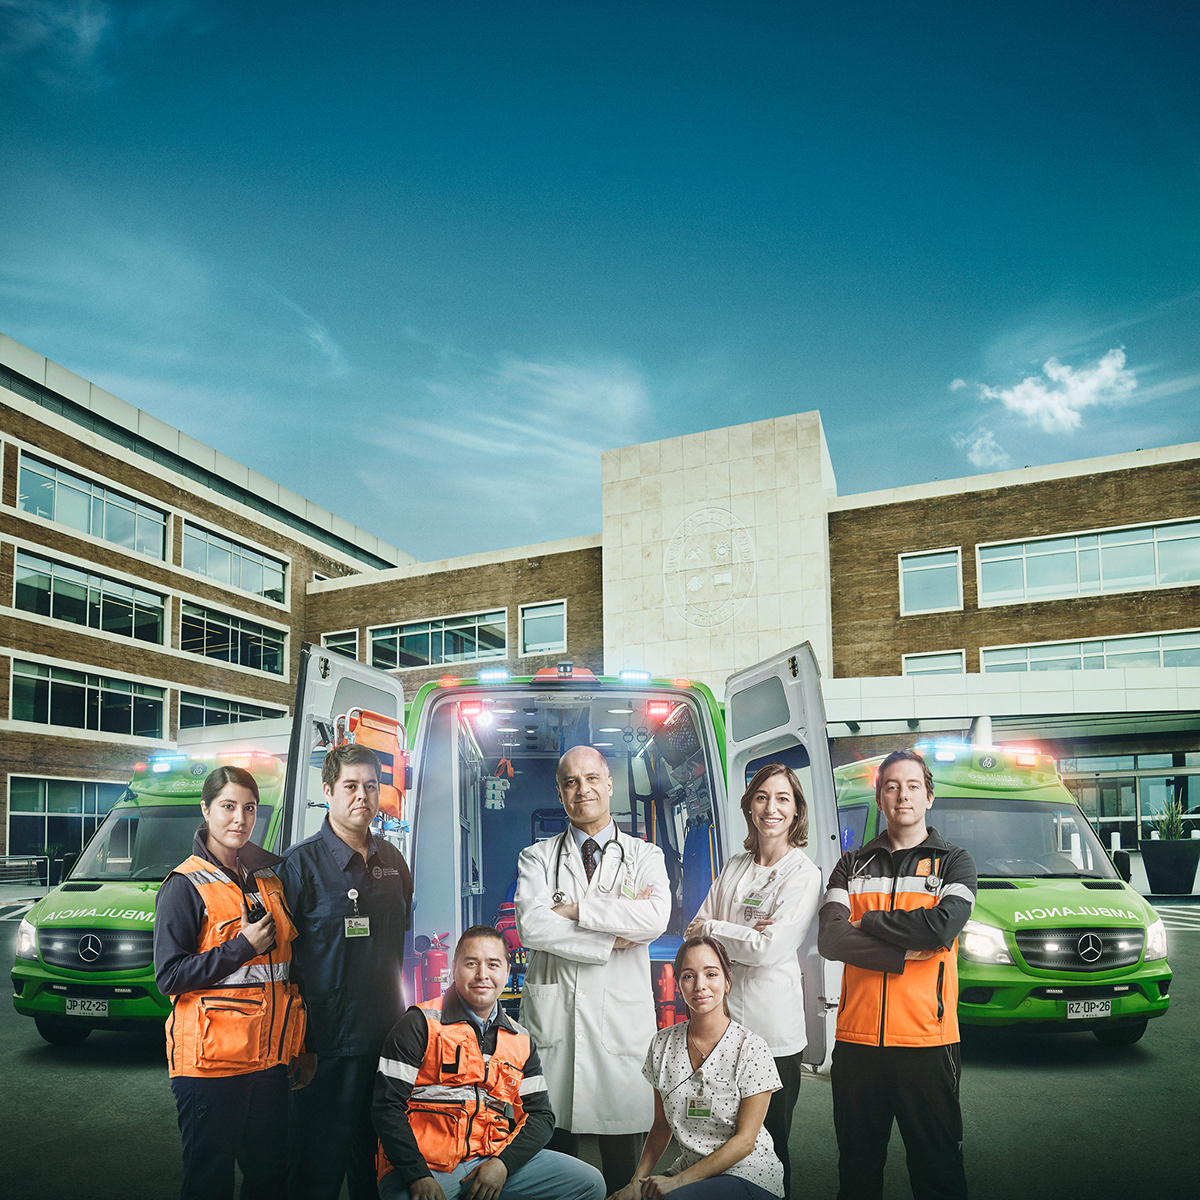 photo,retouch,Advertising ,Medical Clinic,University,chile,armstrong,doctor,ambulance,rescue